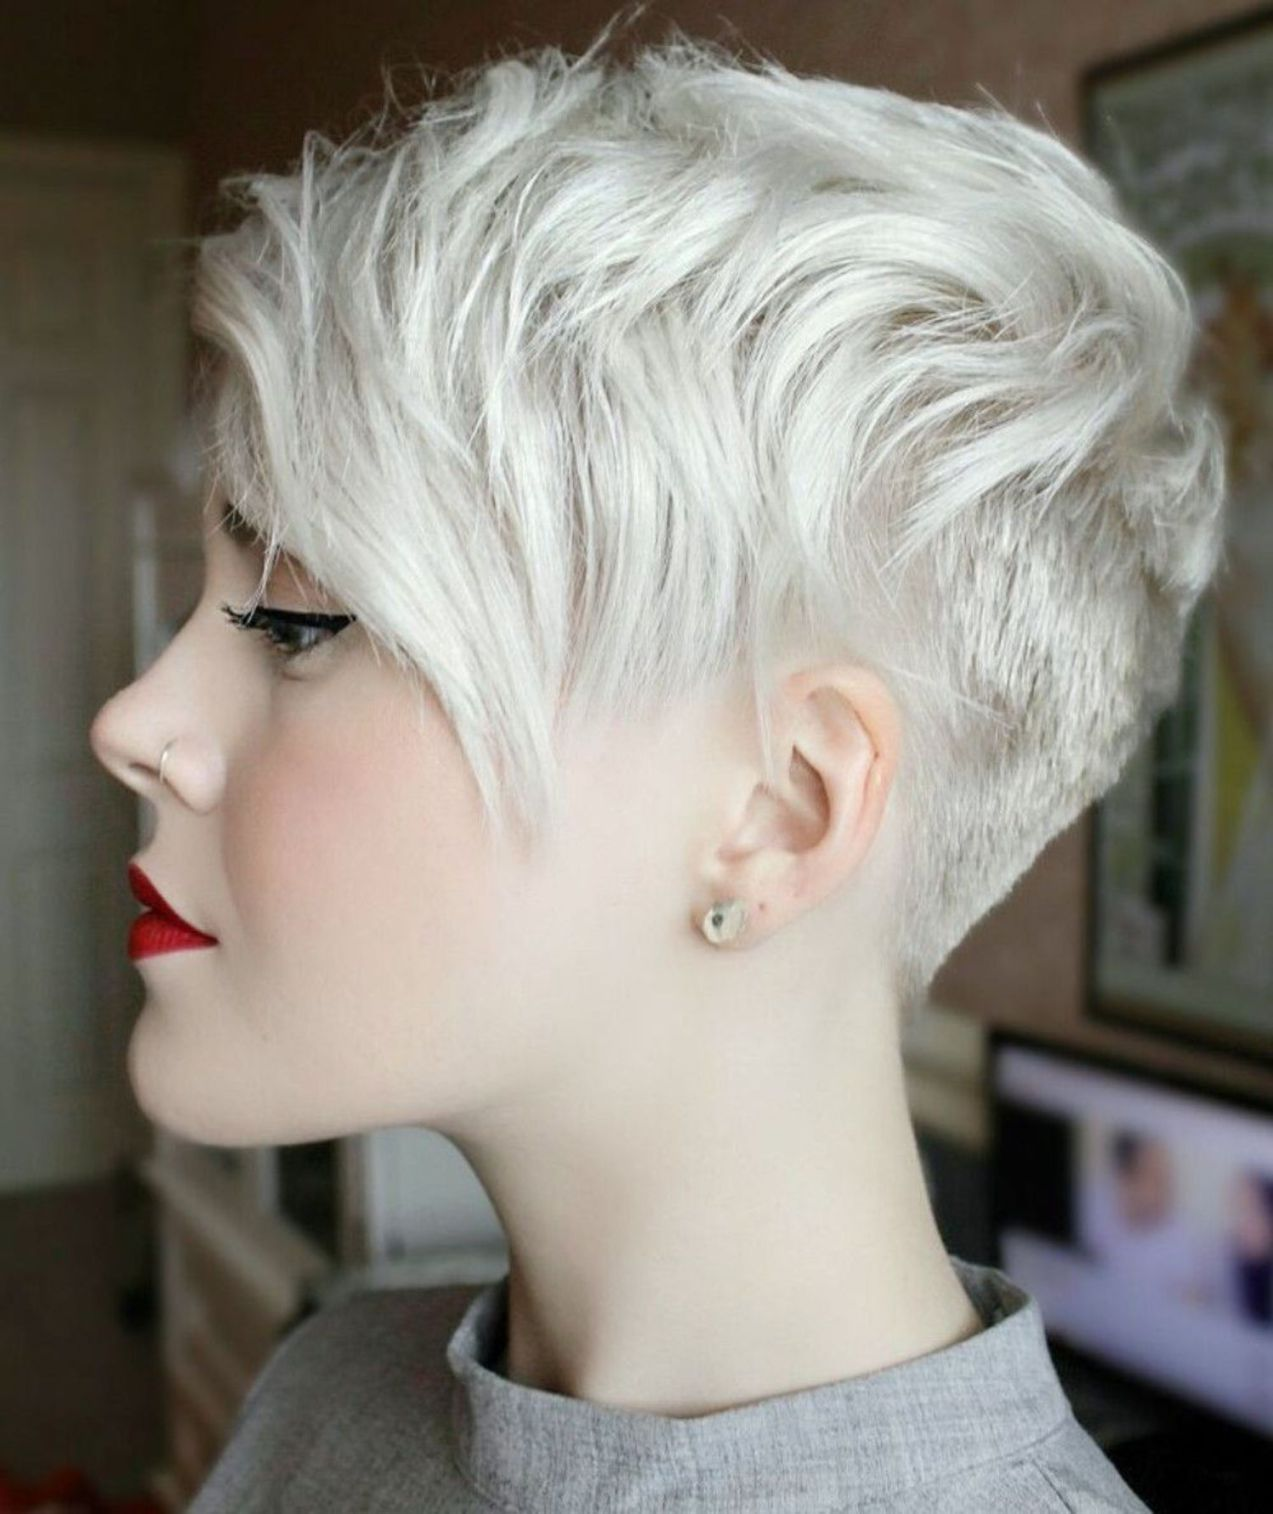 70 Short Shaggy Spiky Edgy Pixie Cuts And Hairstyles In 2018 My